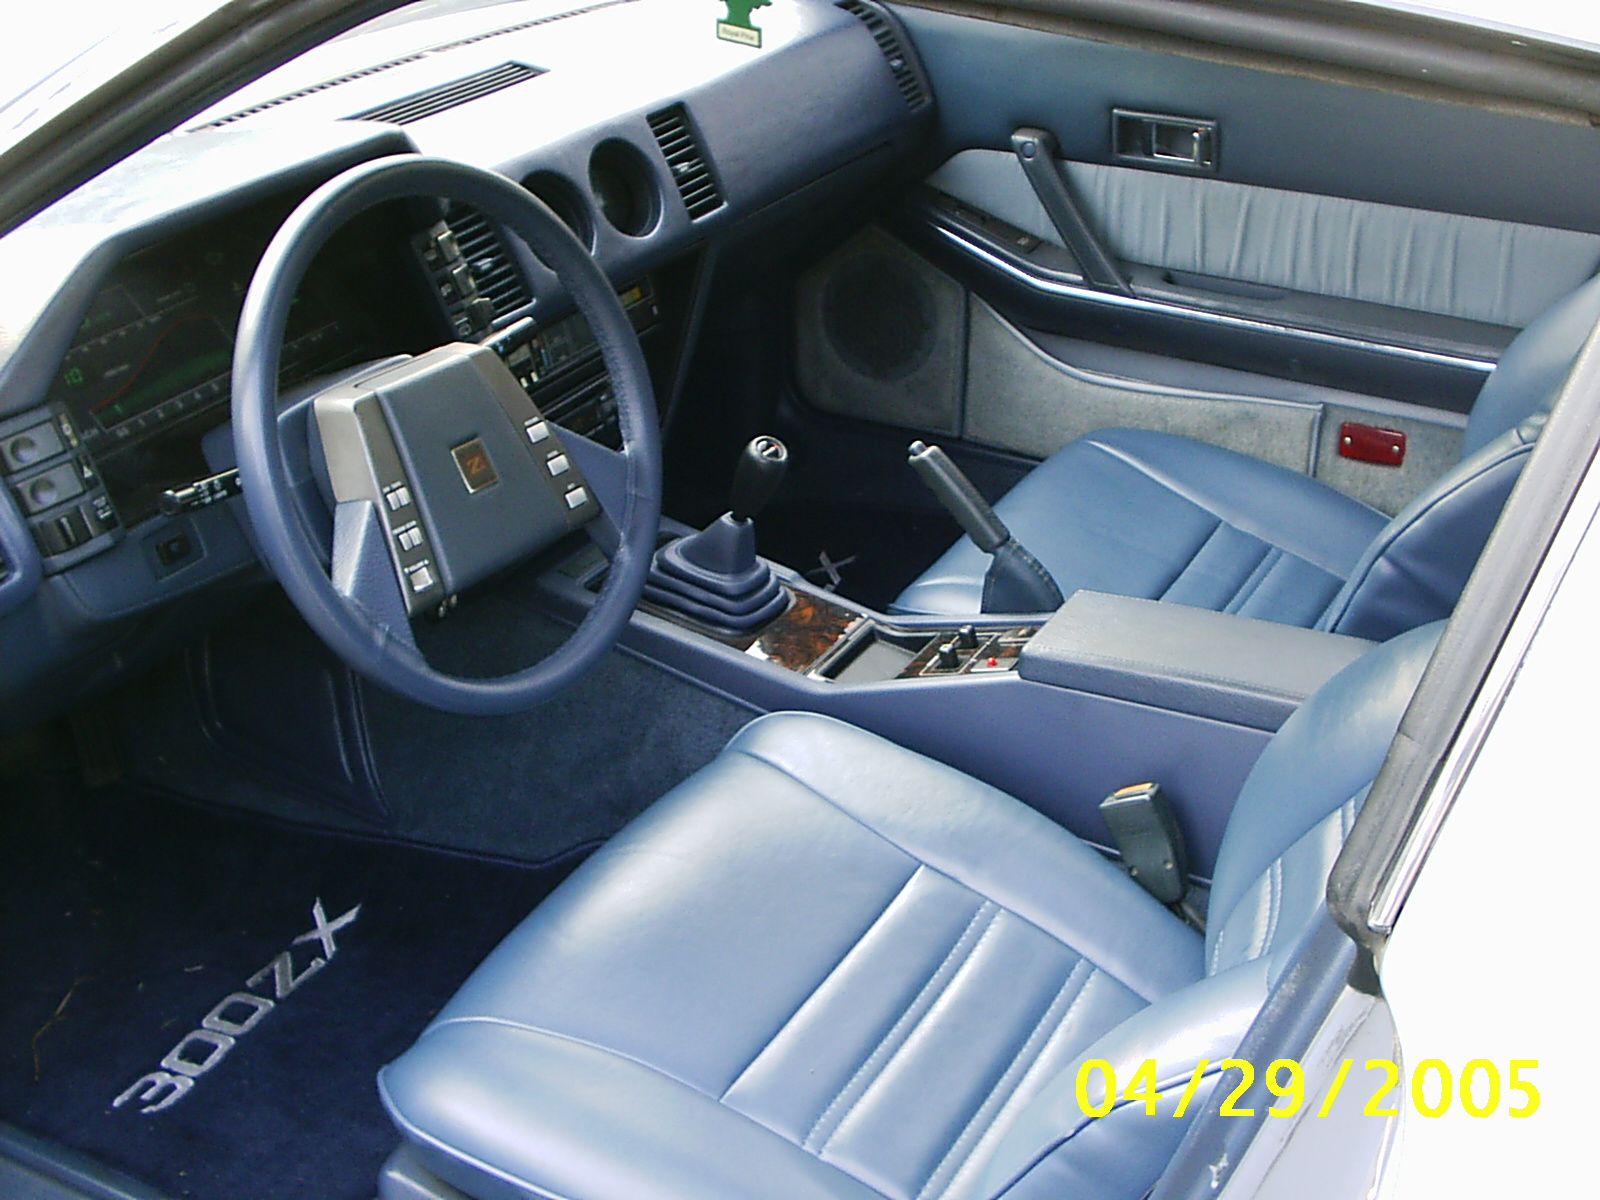 1985 300zx Interior Pictures to Pin on Pinterest  PinsDaddy